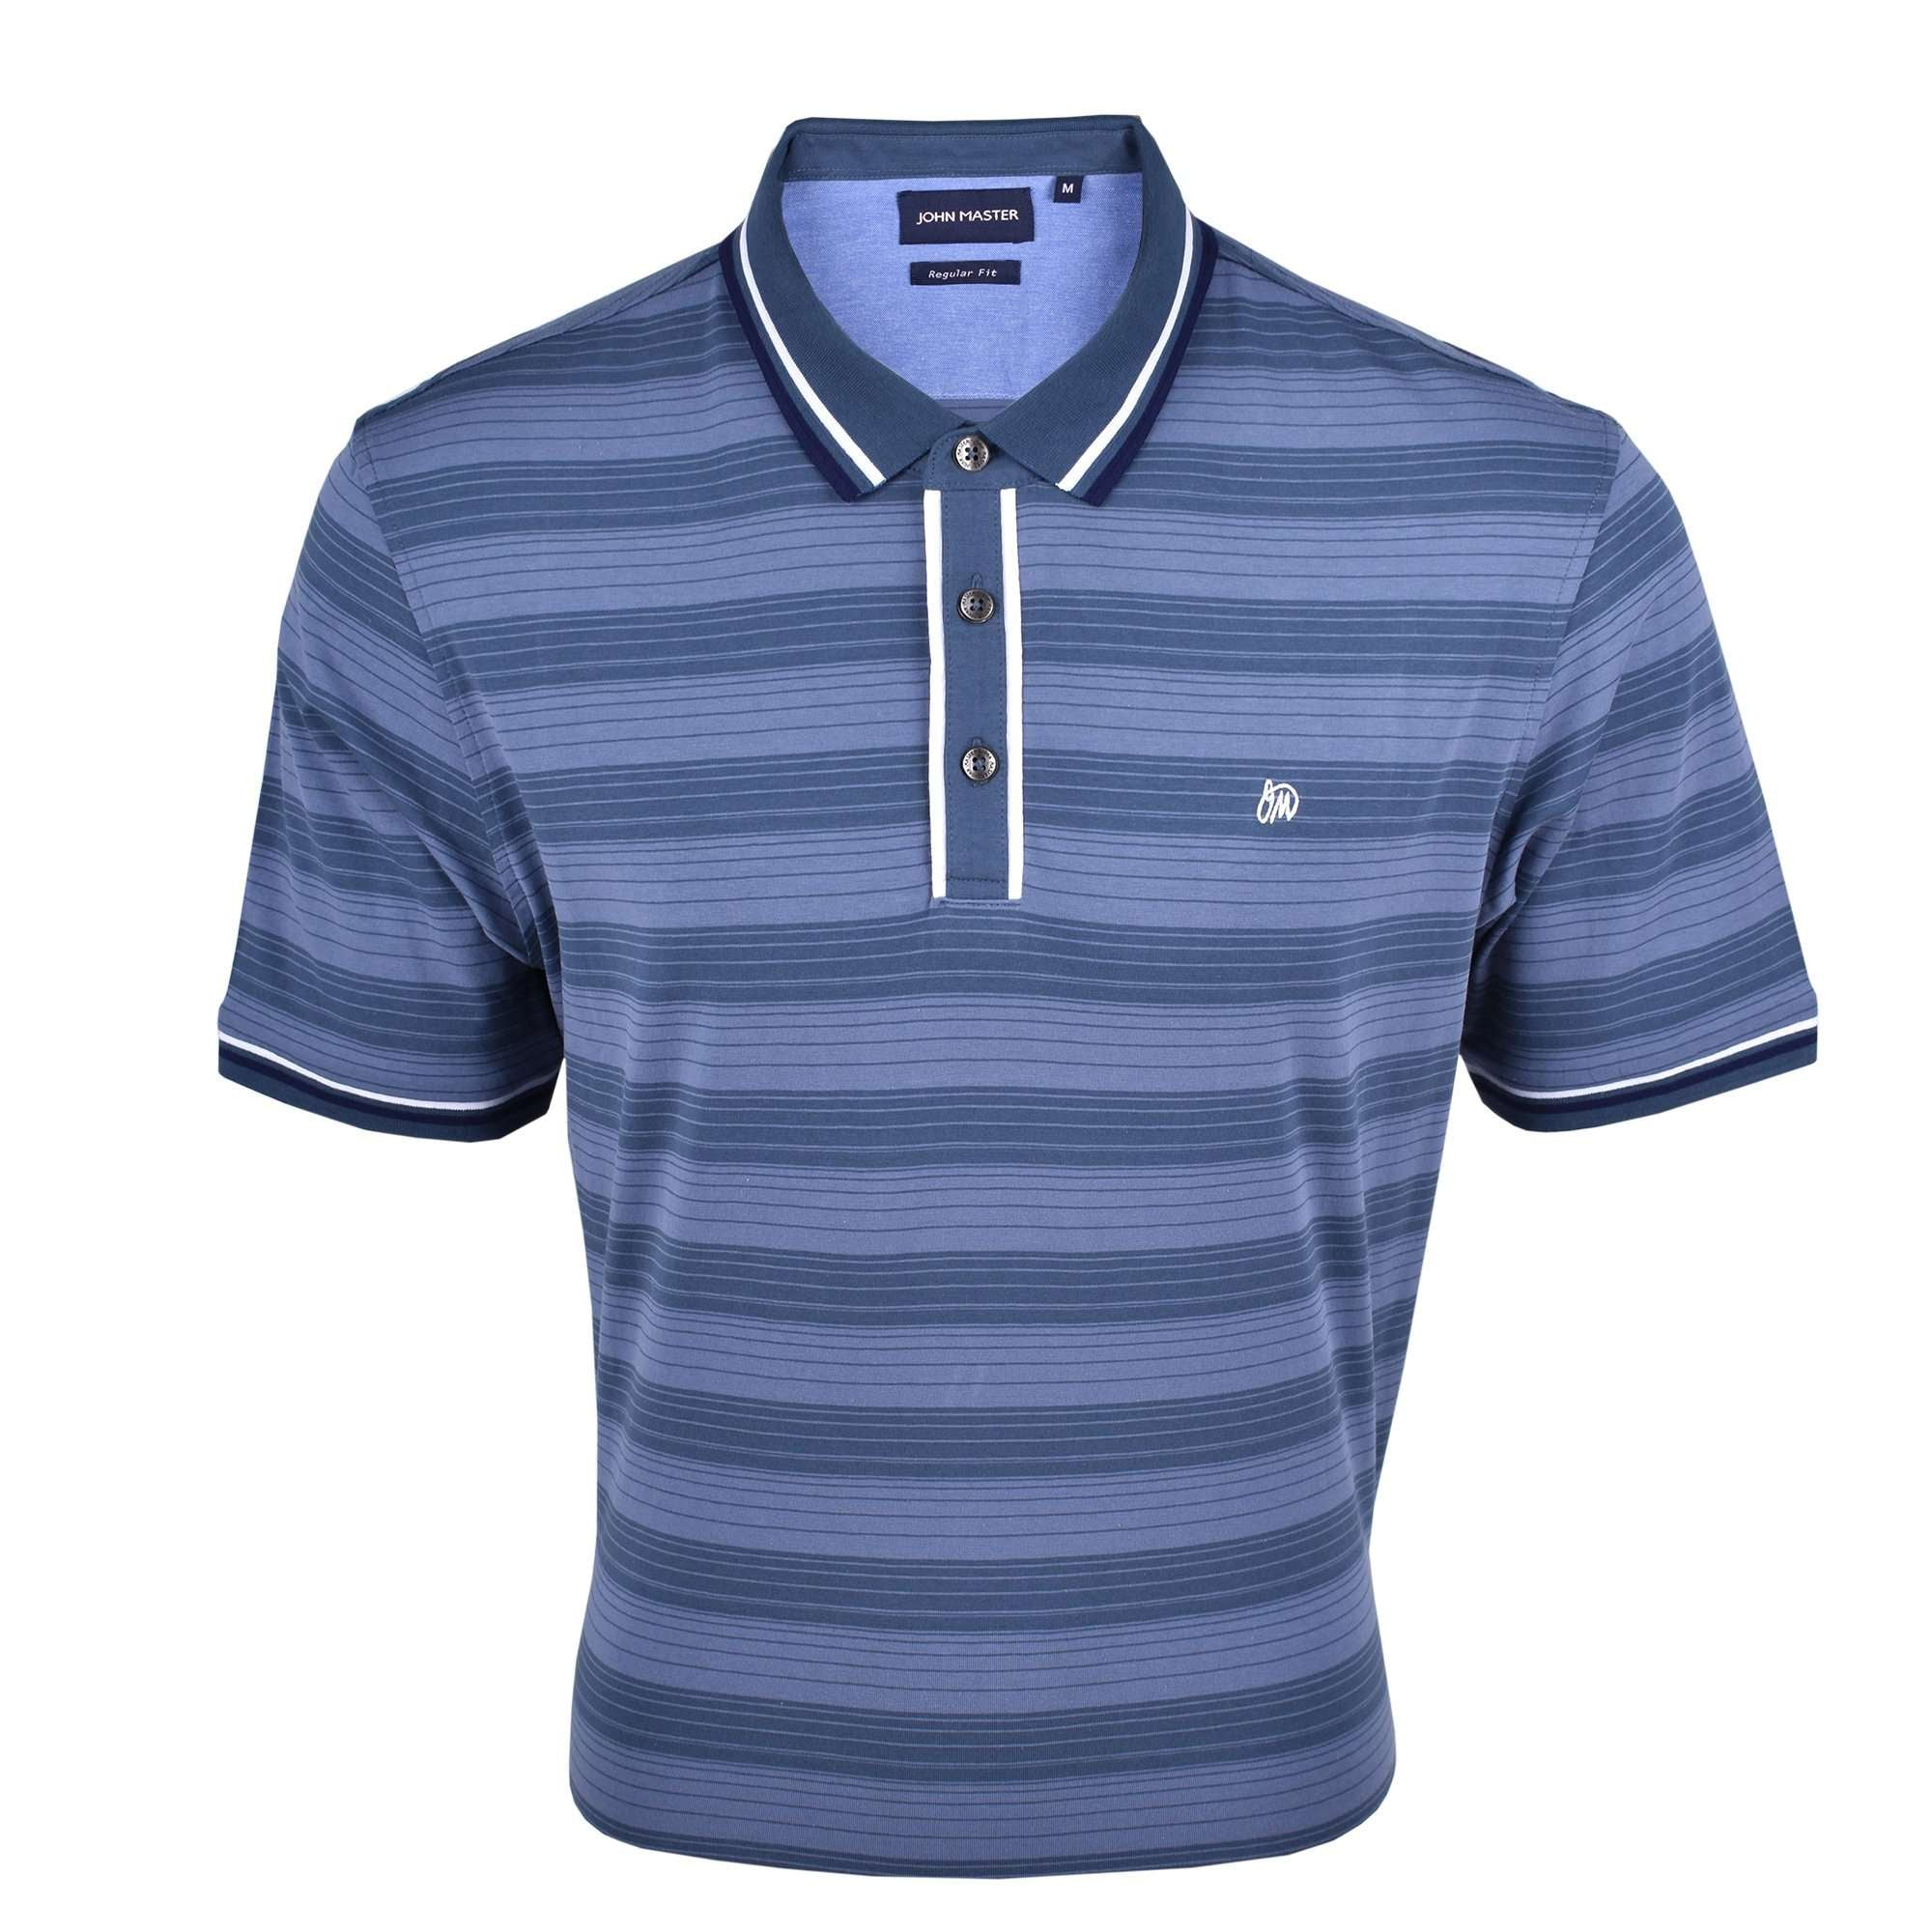 John Master Men Casual Regular Fit Polo Tee Blue 8007008-L5 : Buy John Master online at CMG.MY